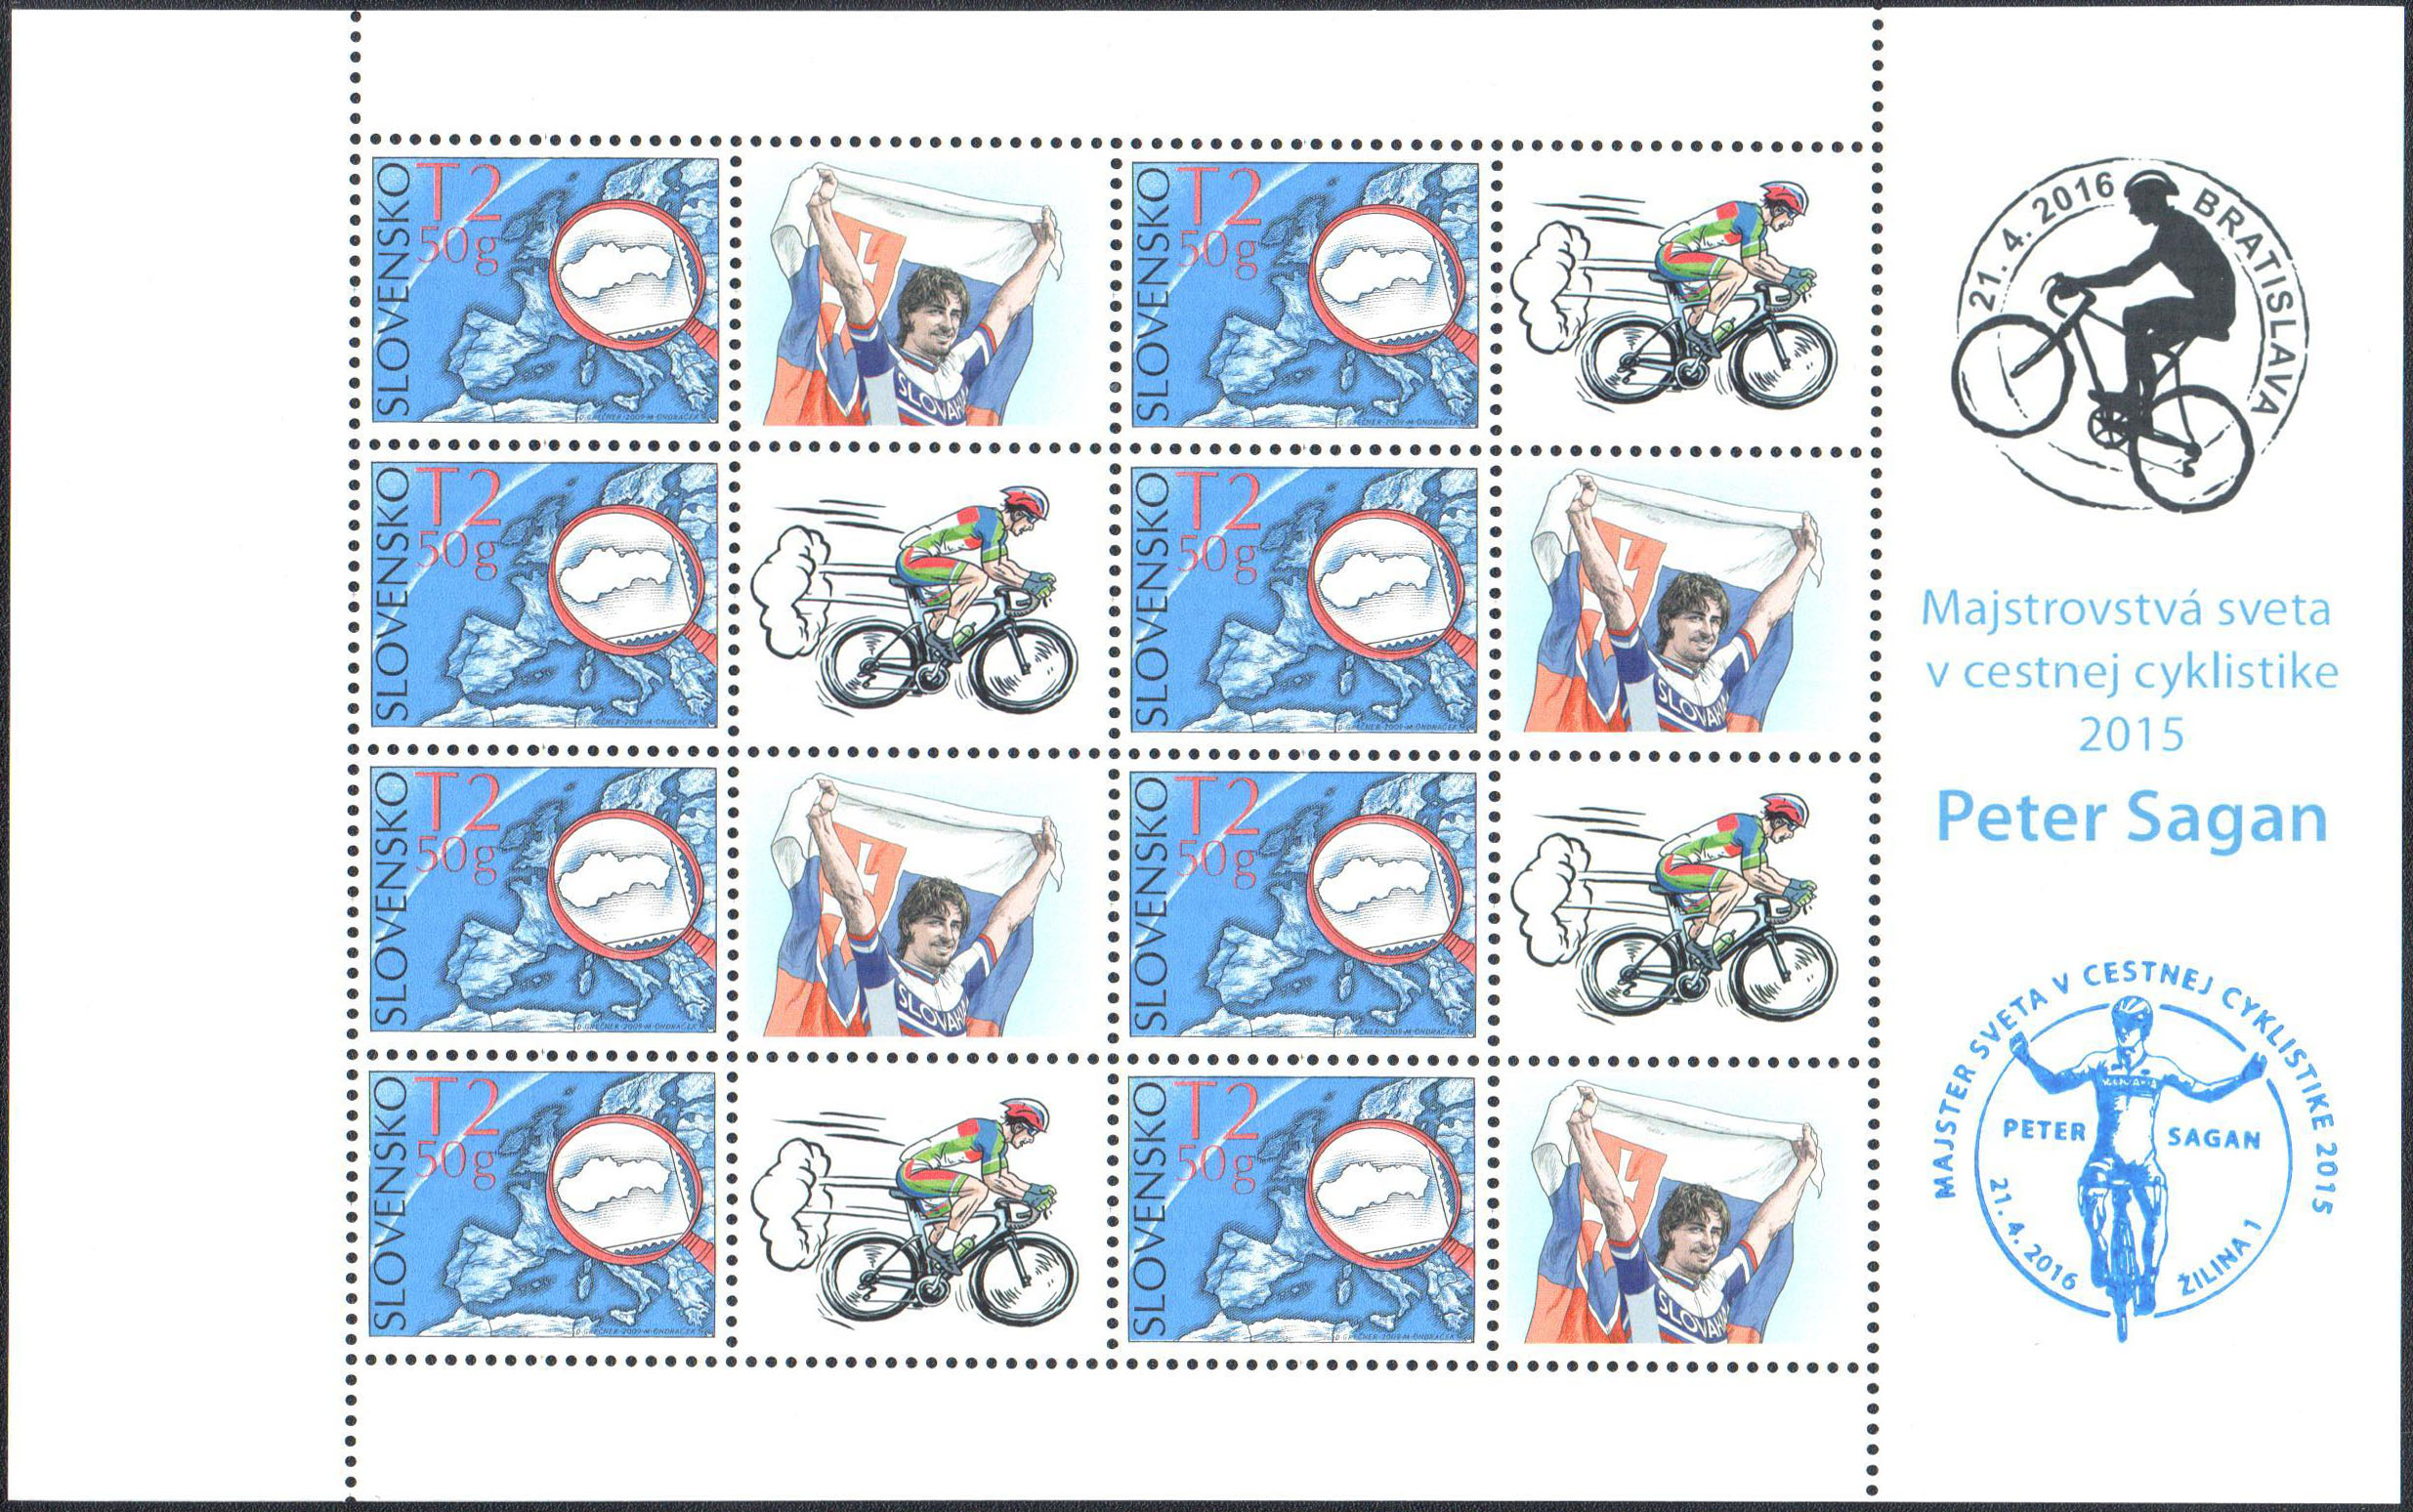 Personalised adjusted printing sheet: 2015 UCI Road World Championships - Peter Sagan with the commemorative postmark Introduction of postage stamp 2015 UCI Road World Championships - Peter Sagan